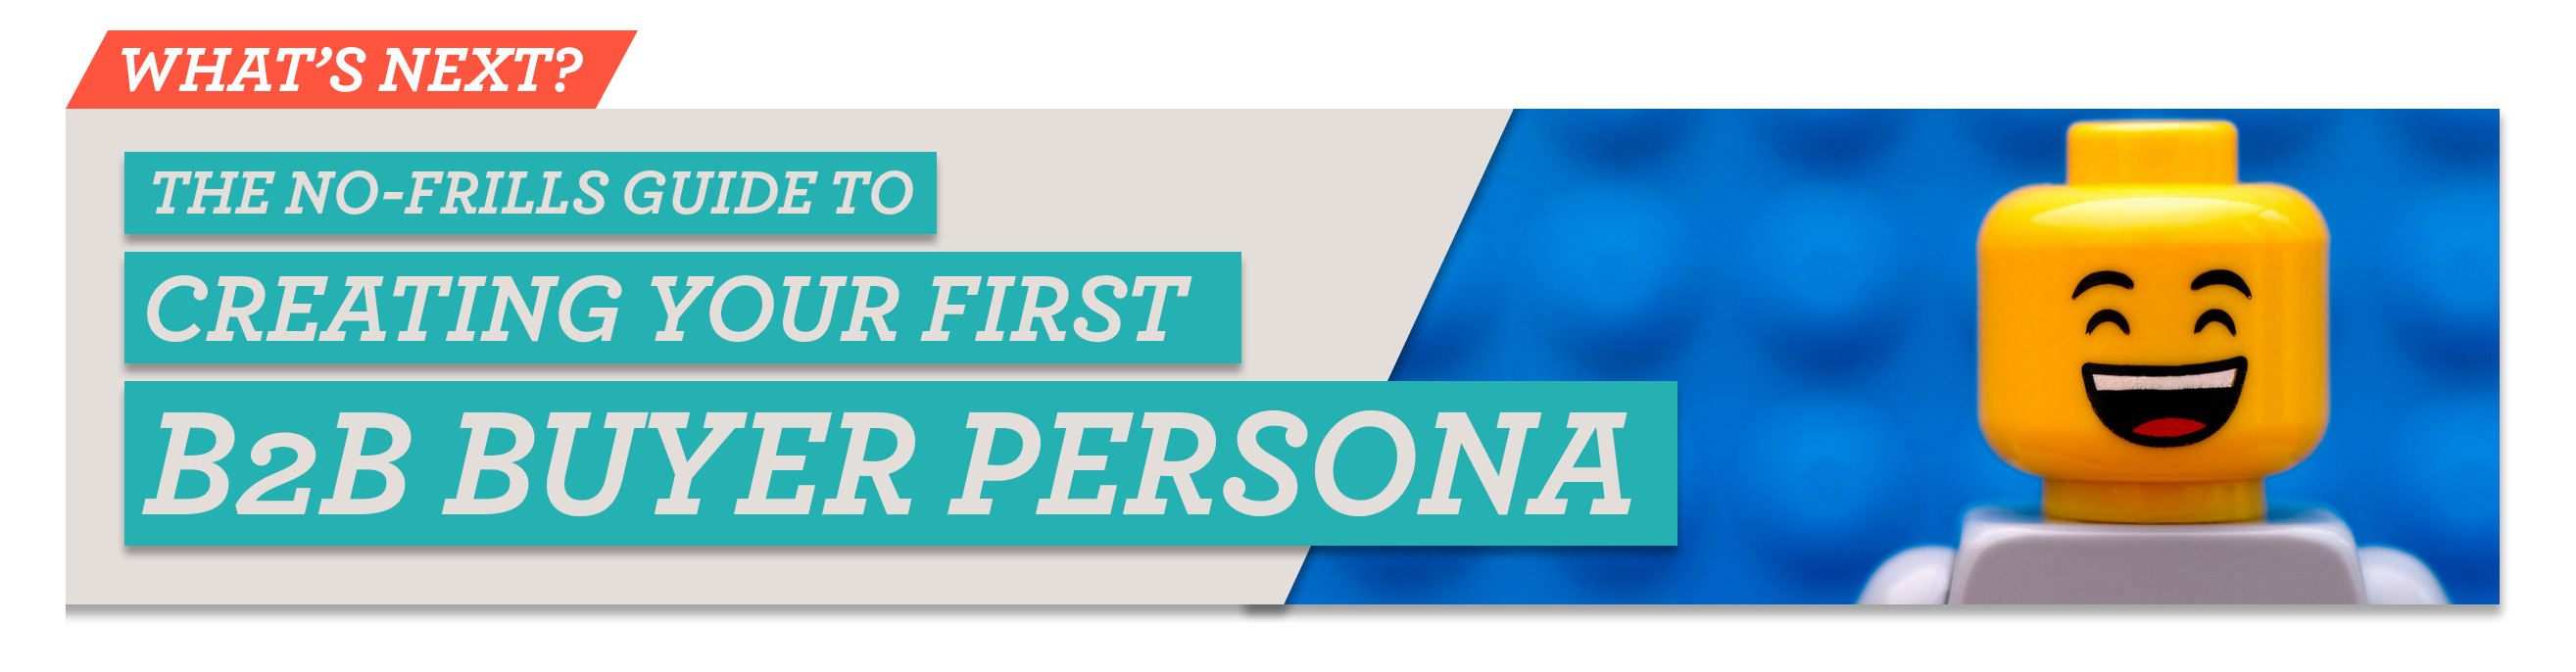 how to create a b2b buyer persona for inbound marketing